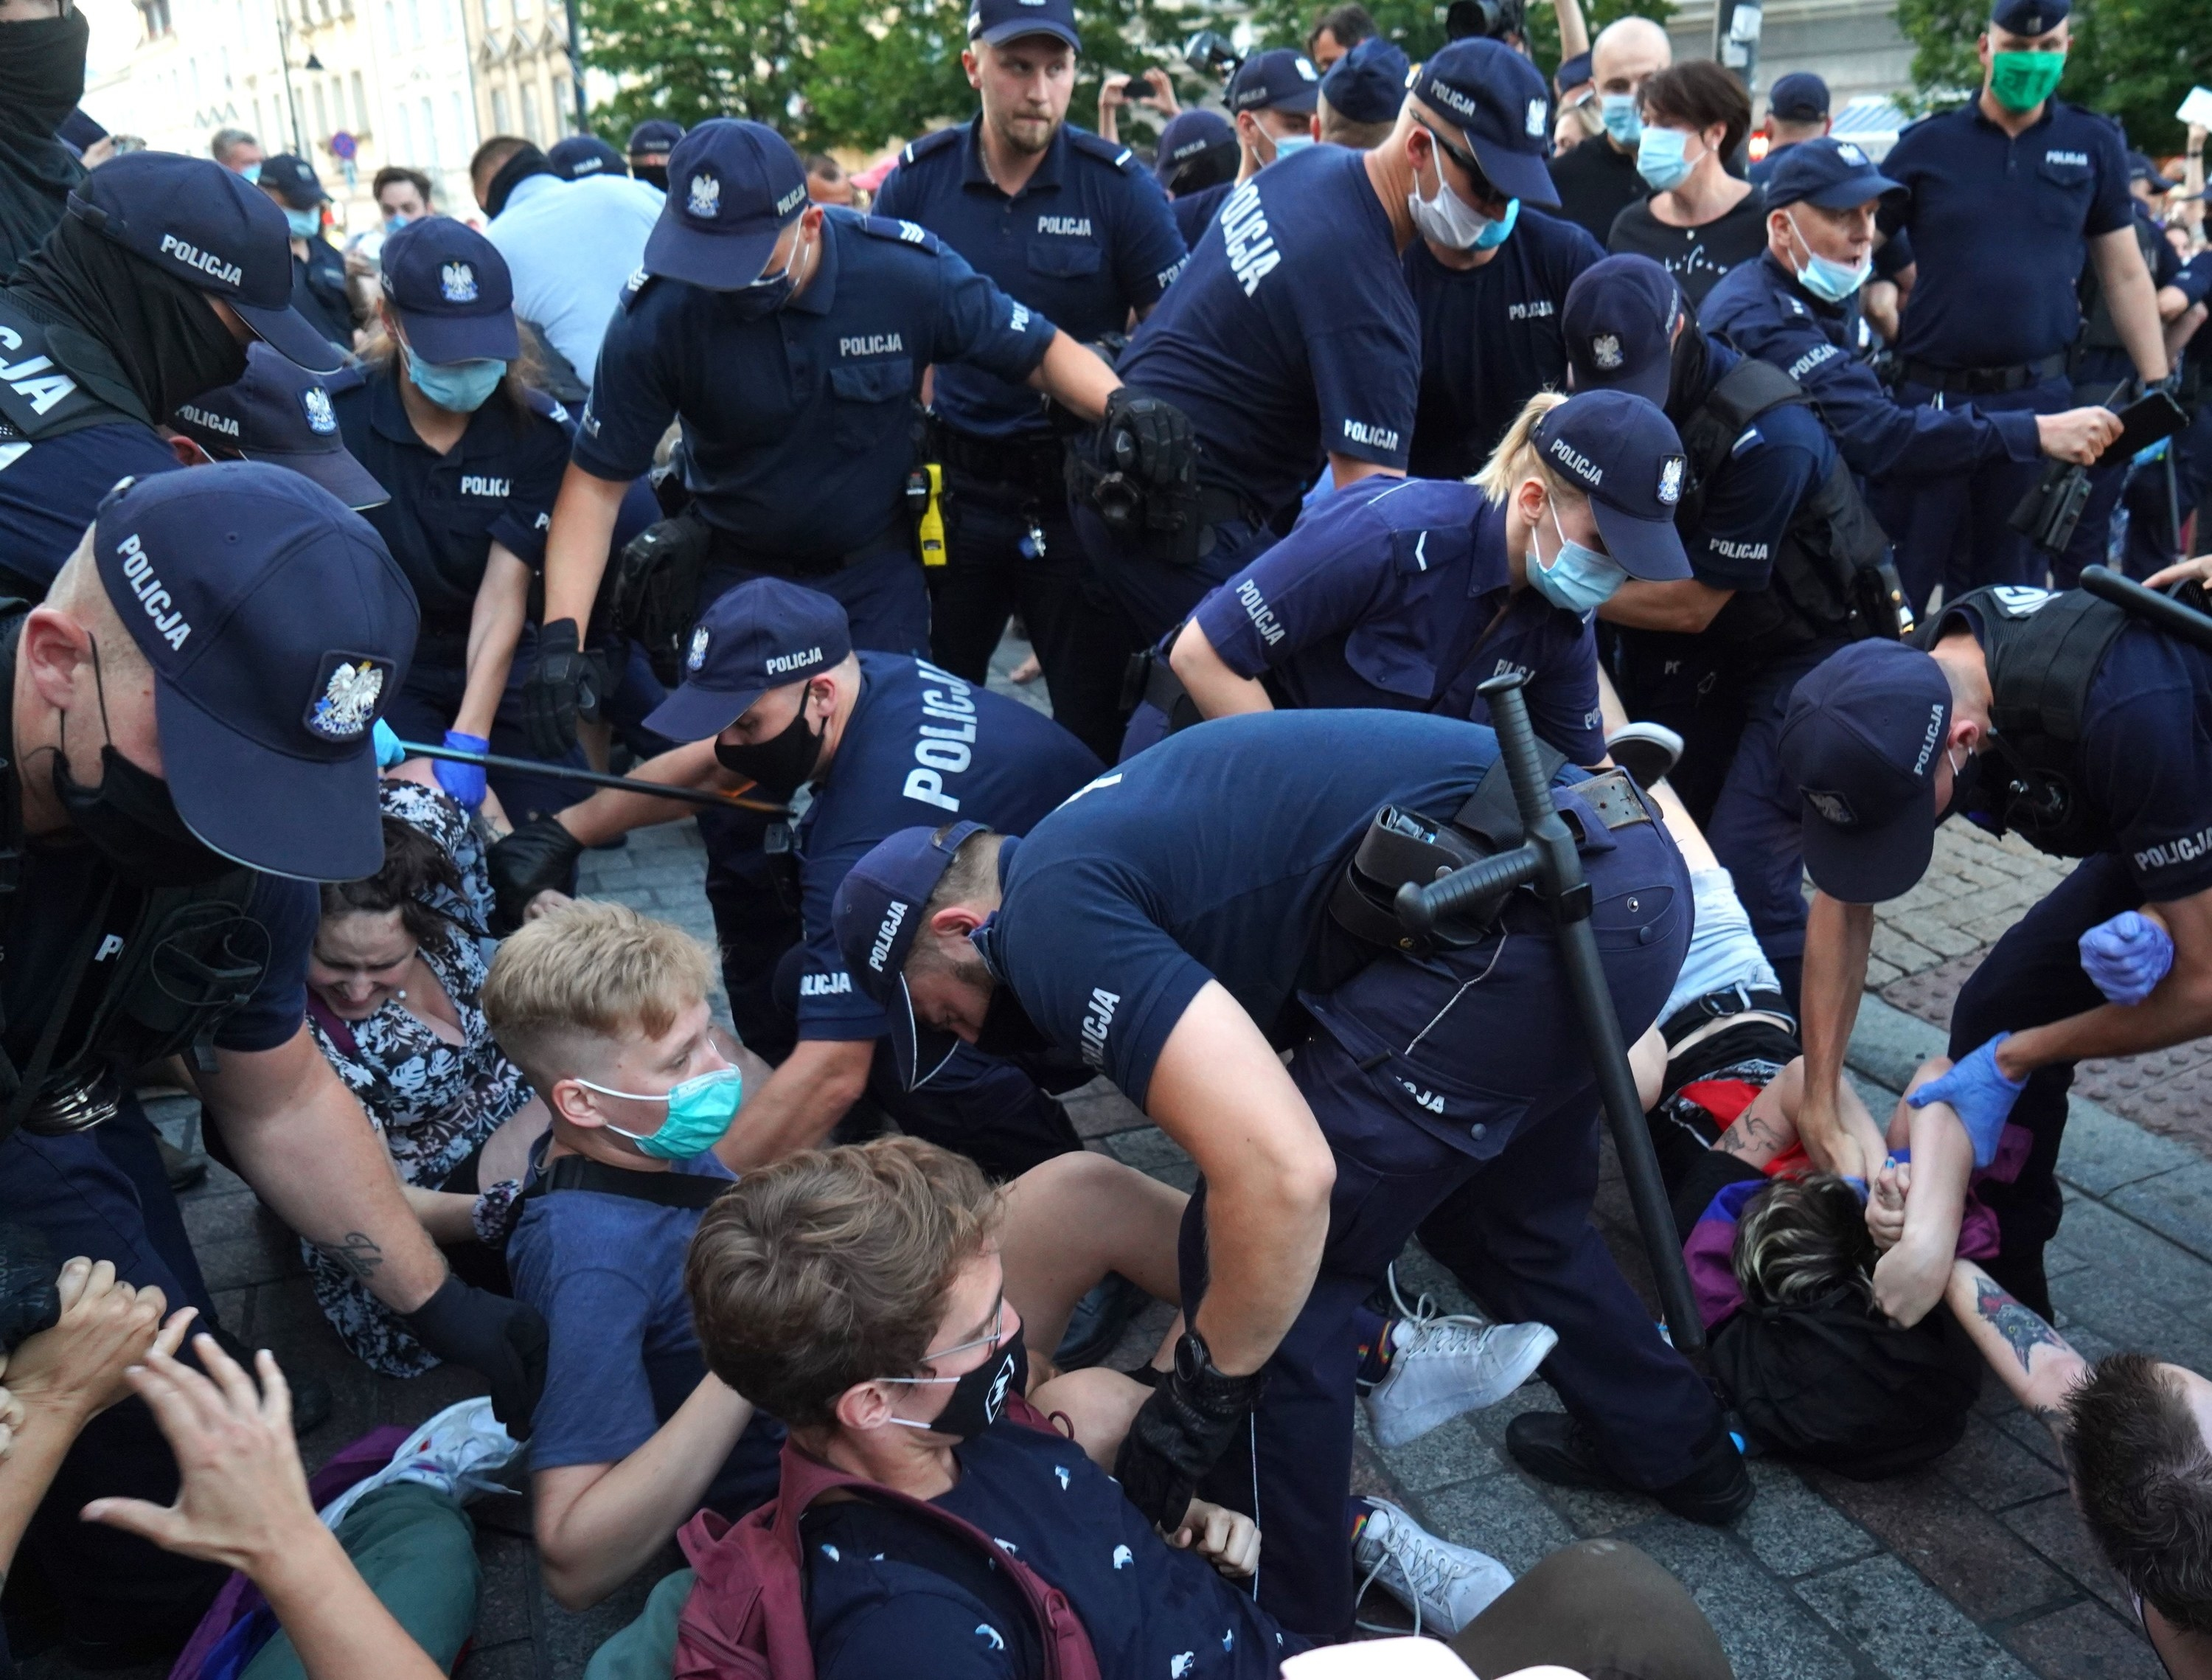 Officers surround and try to remove protesters sitting and lying on the ground